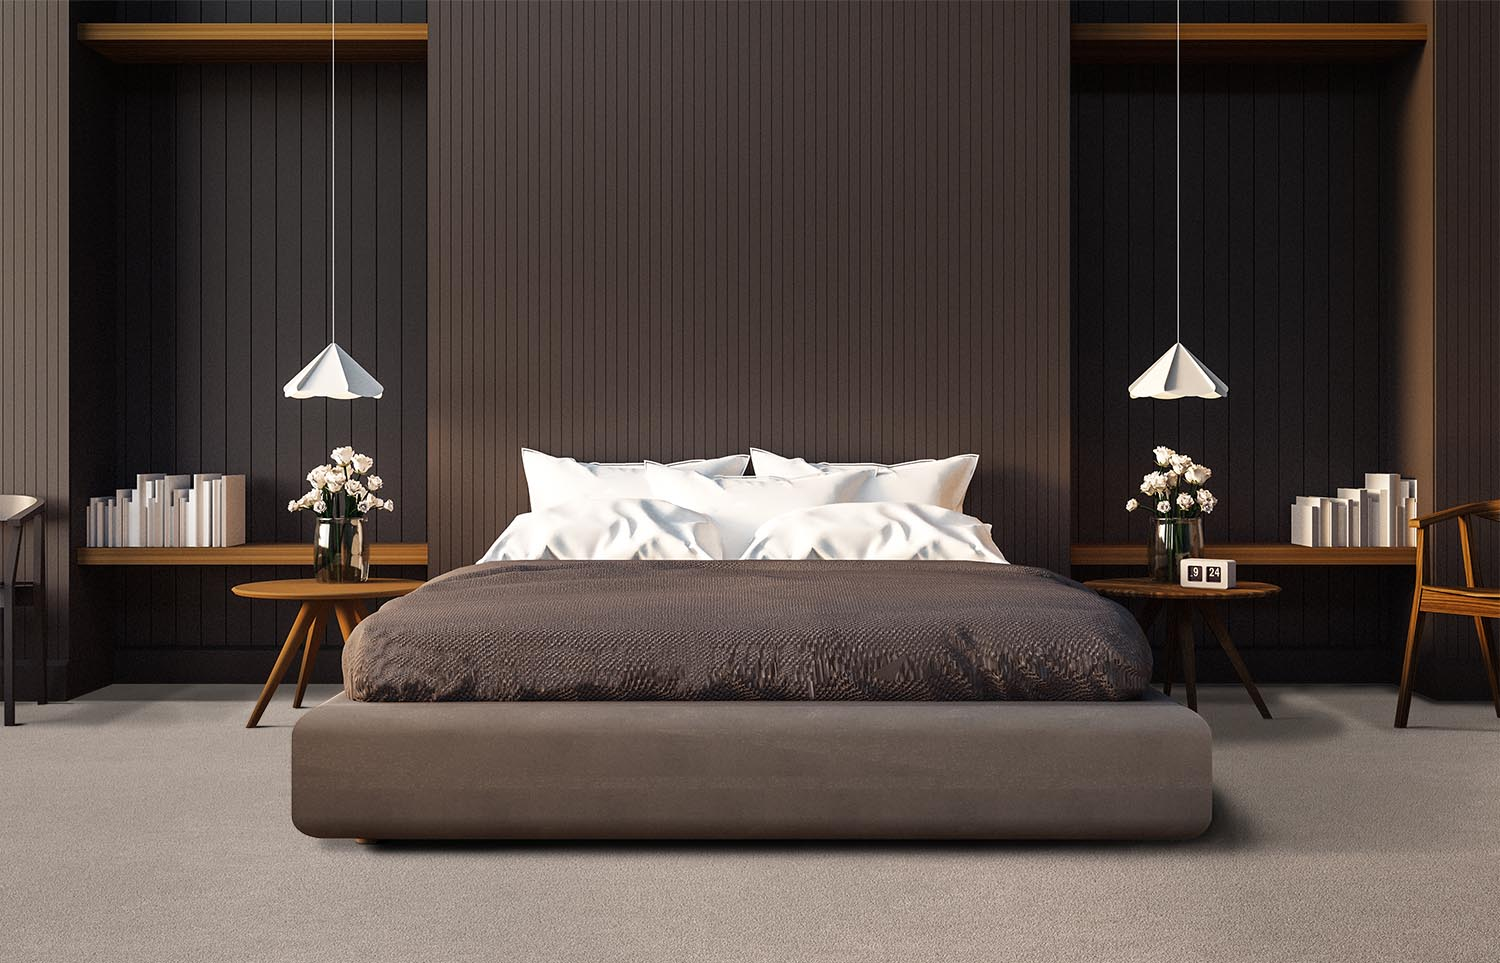 Softology - S201 - Fawn contemporary bedroom